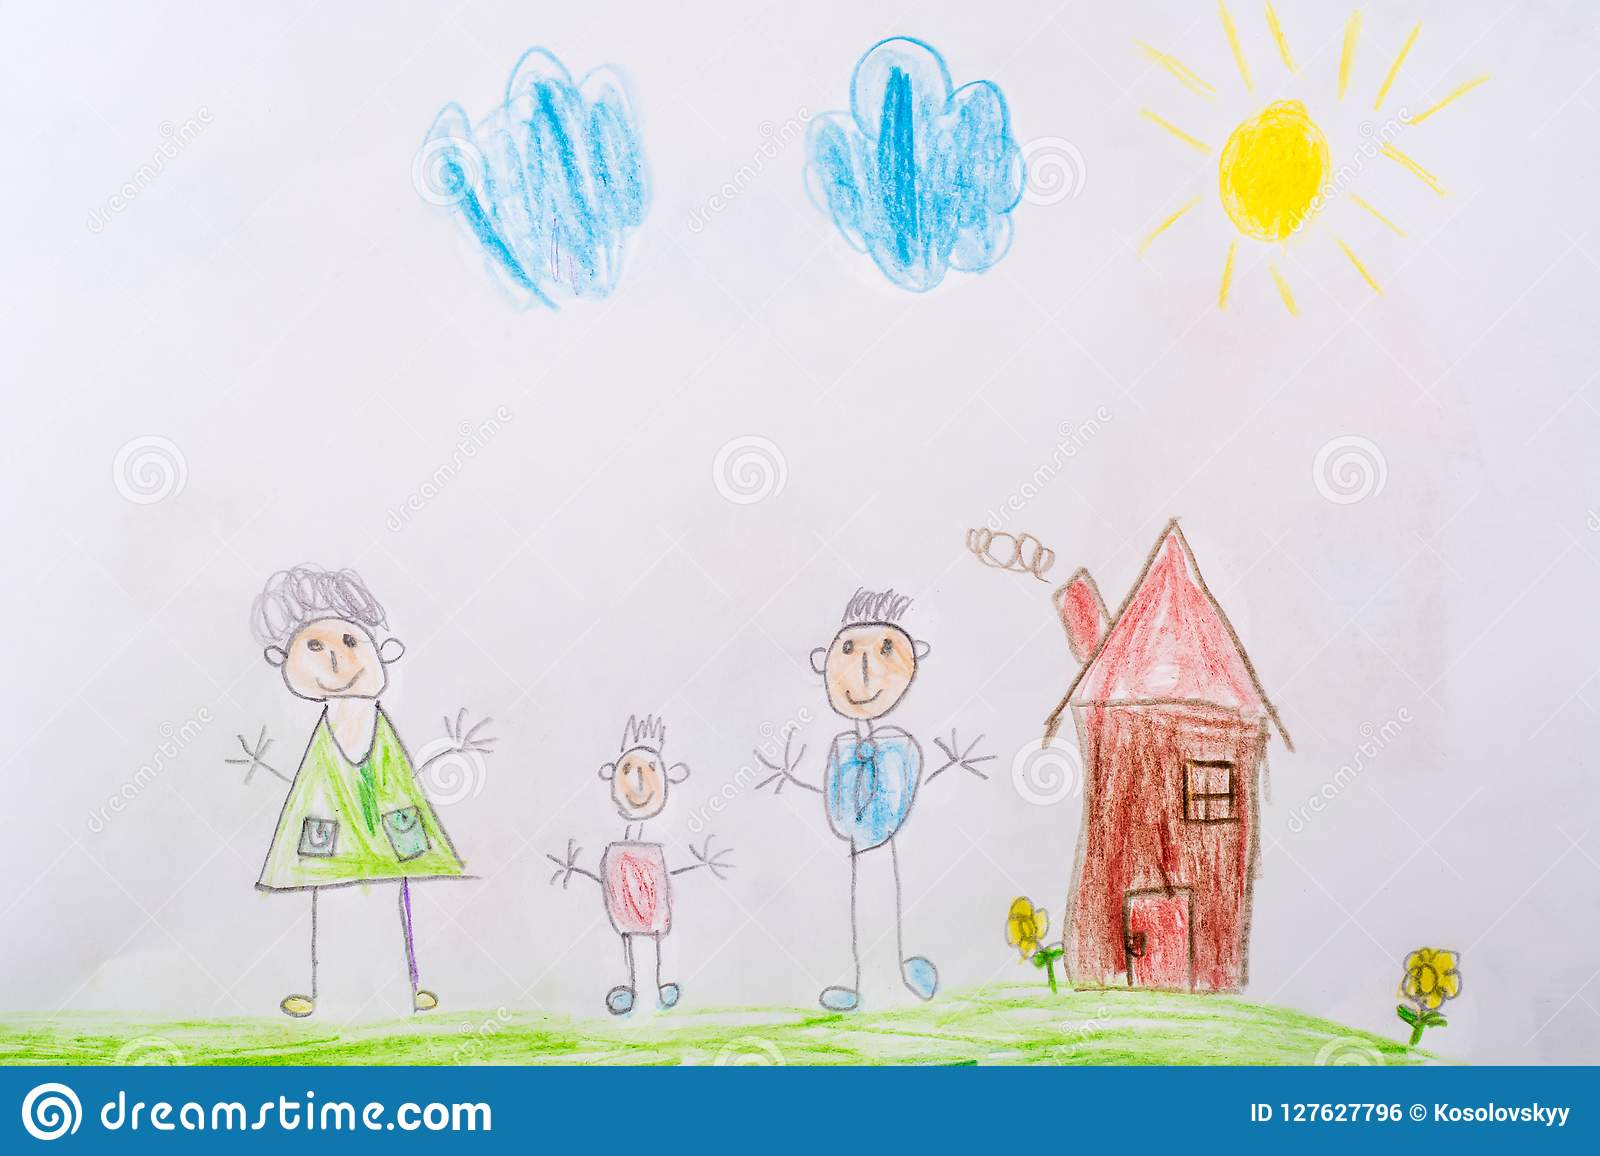 My Childhood Drawing Is My Happy Family The Concept Of Child Psychology Stock Photo Image Of Child Paper 127627796